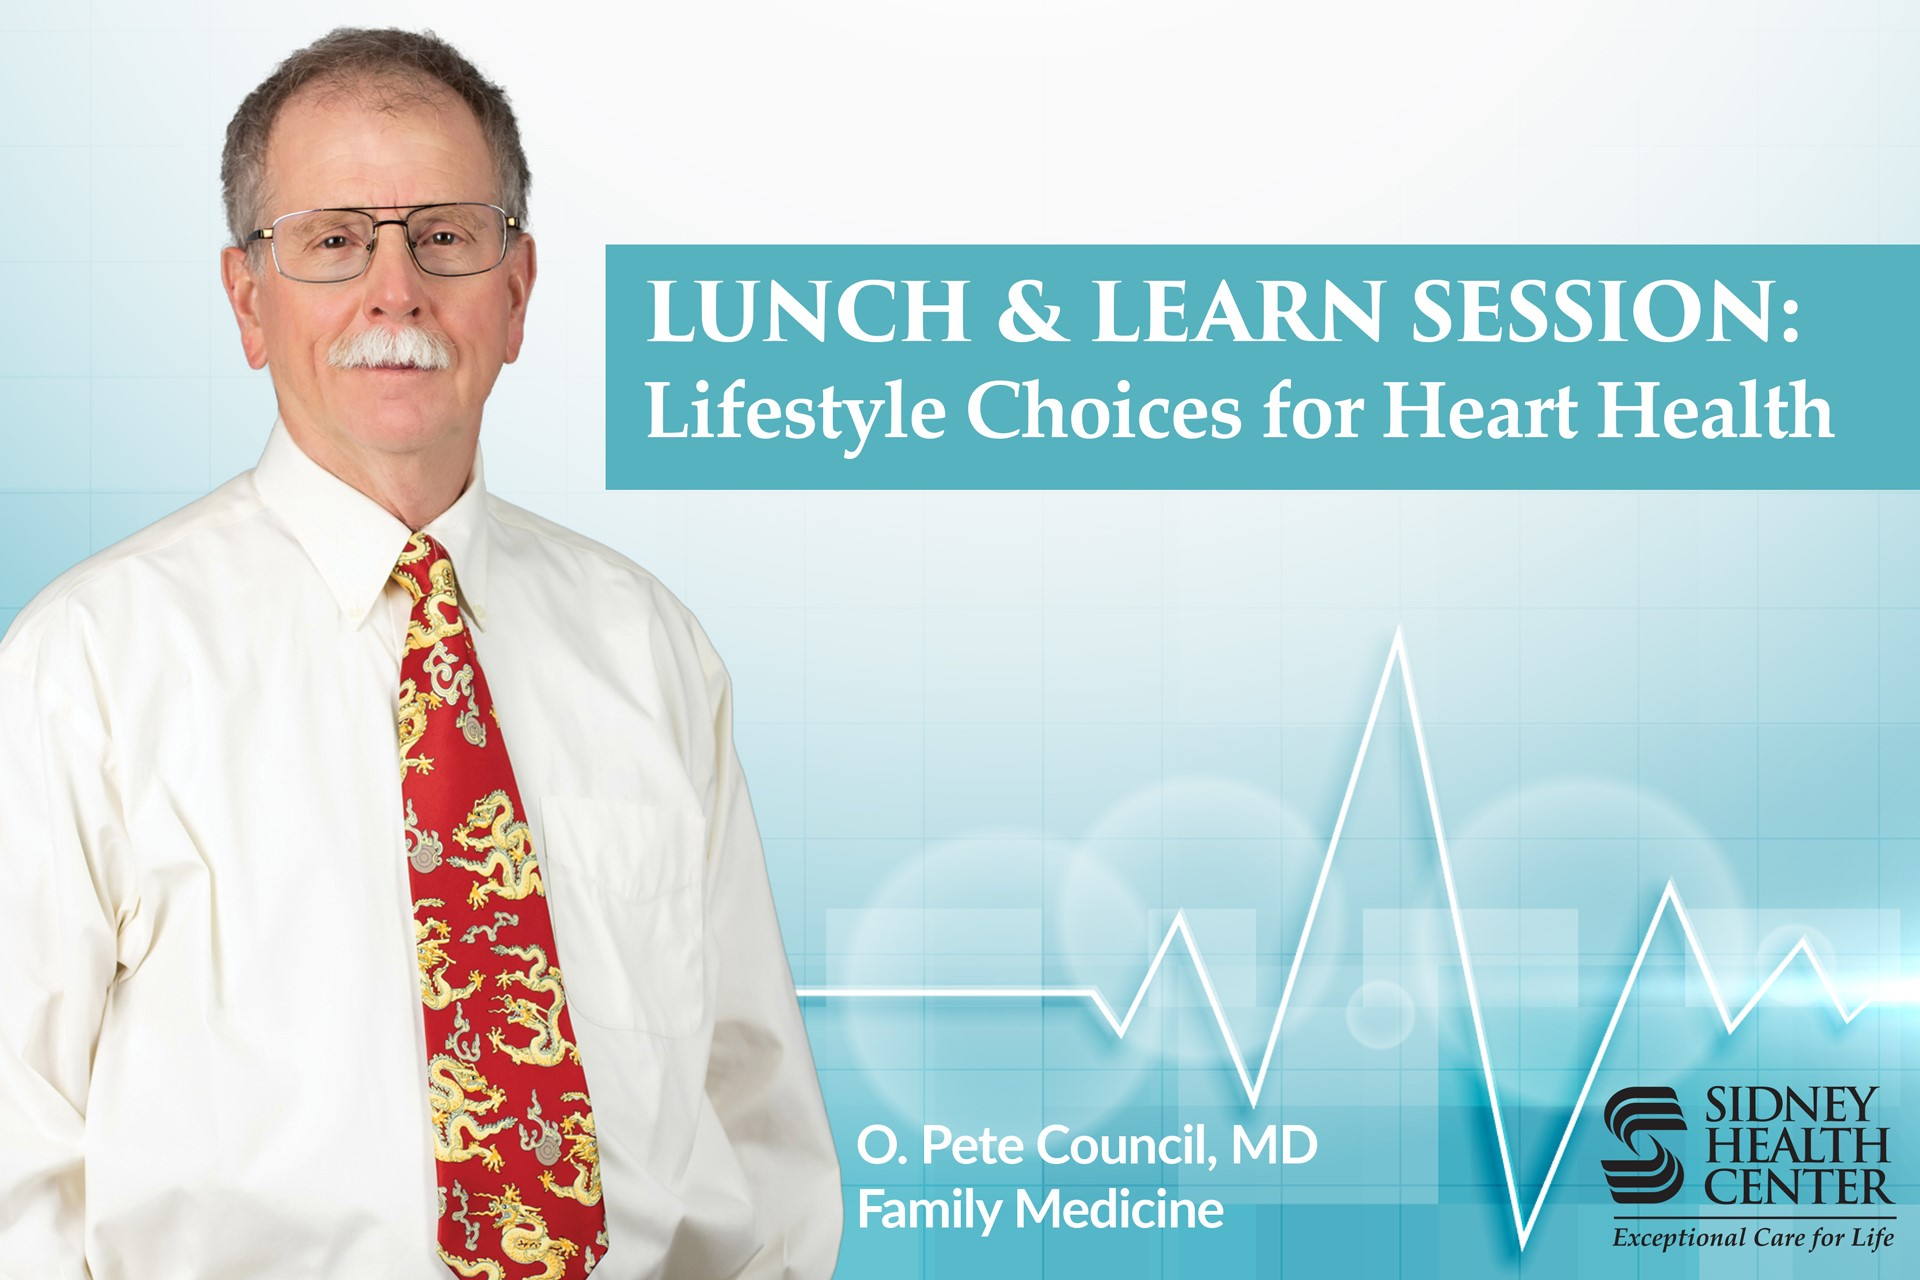 Lunch & Learn Session: Lifestyle Choices for Heart Health